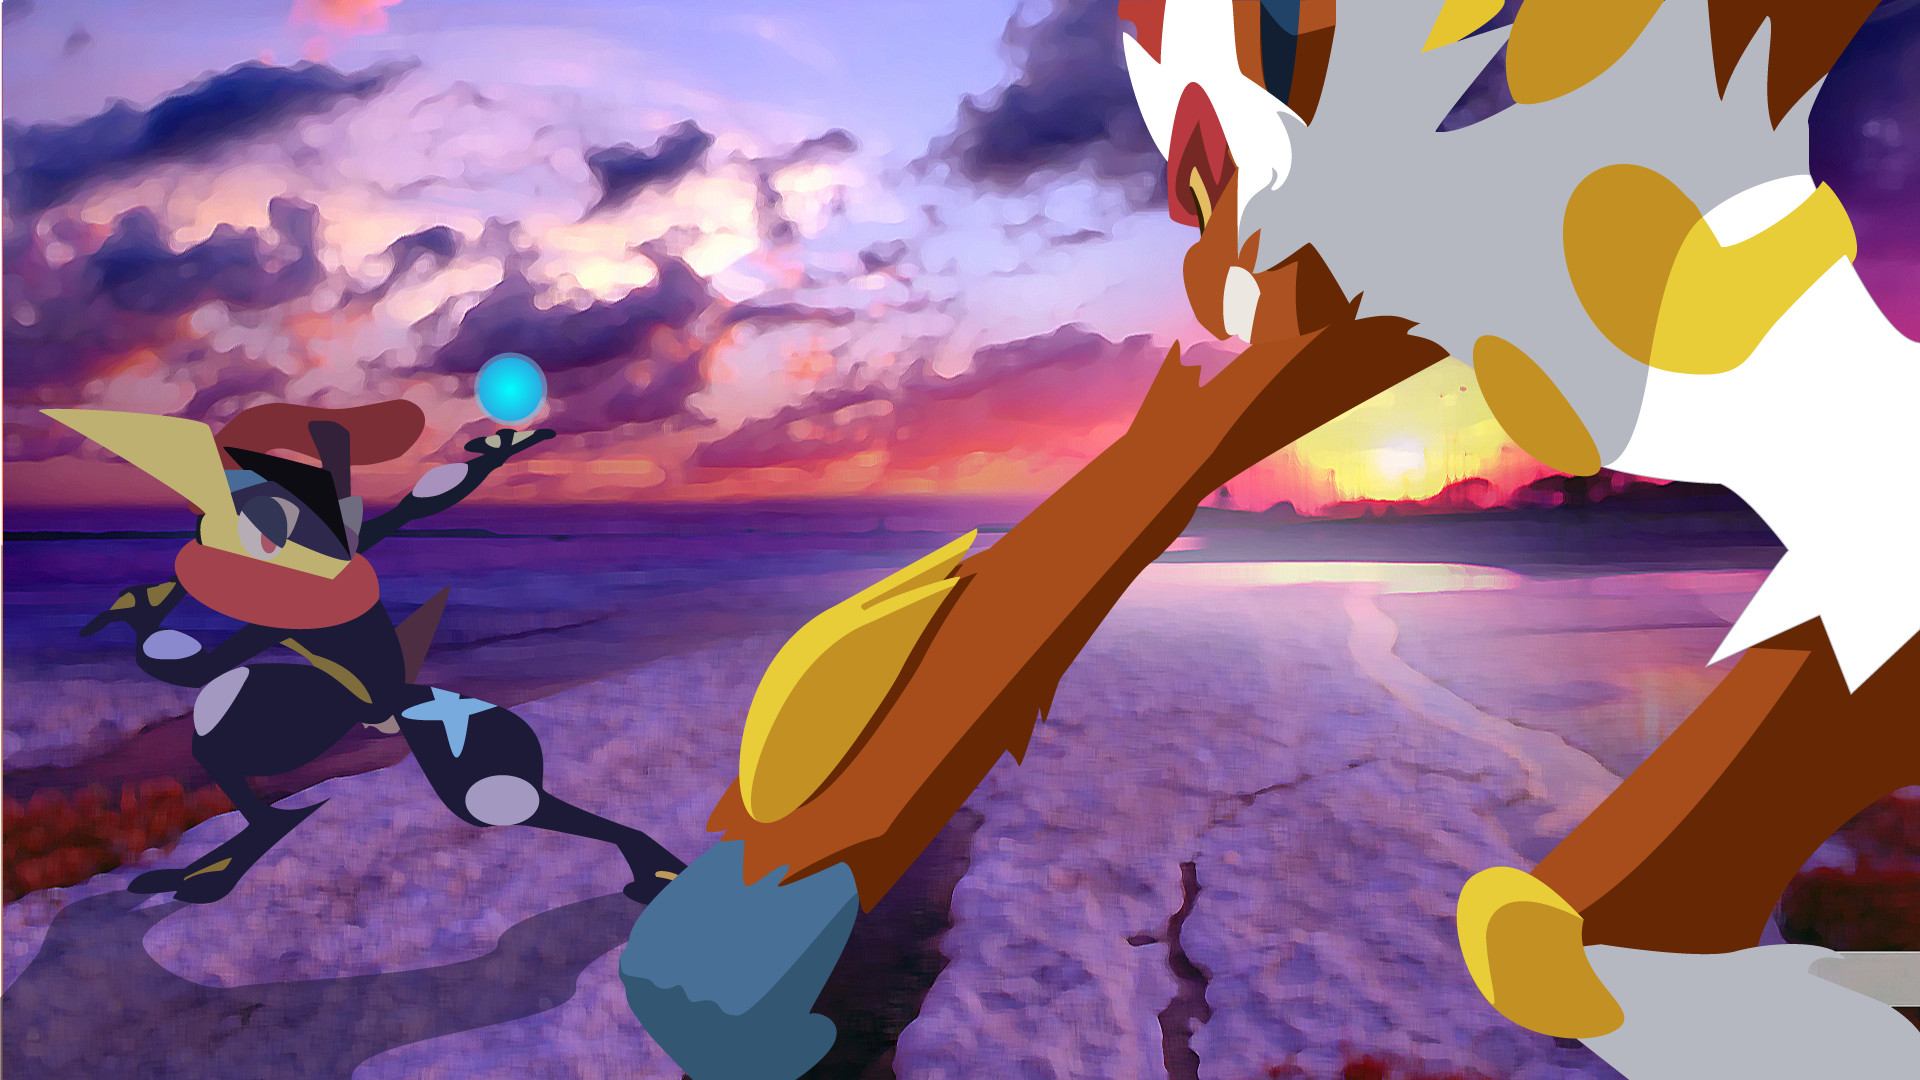 1920x1080 ... DrewJayJohnson Greninja-vs-Infernape-Sunset by DrewJayJohnson